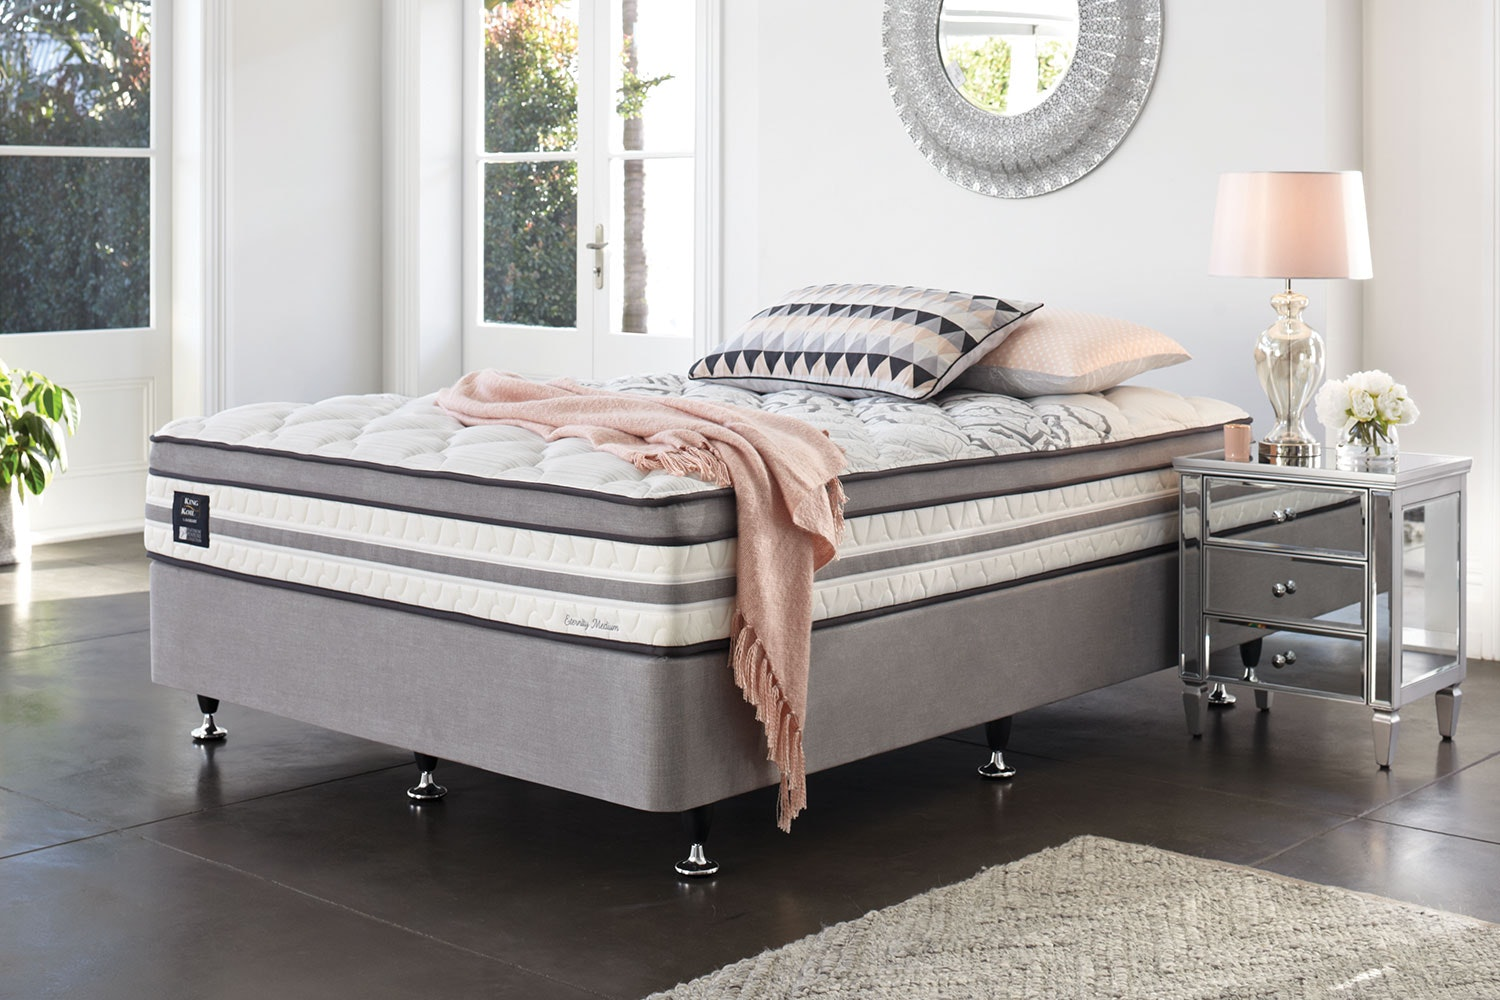 Eternity Medium Single Bed by King Koil